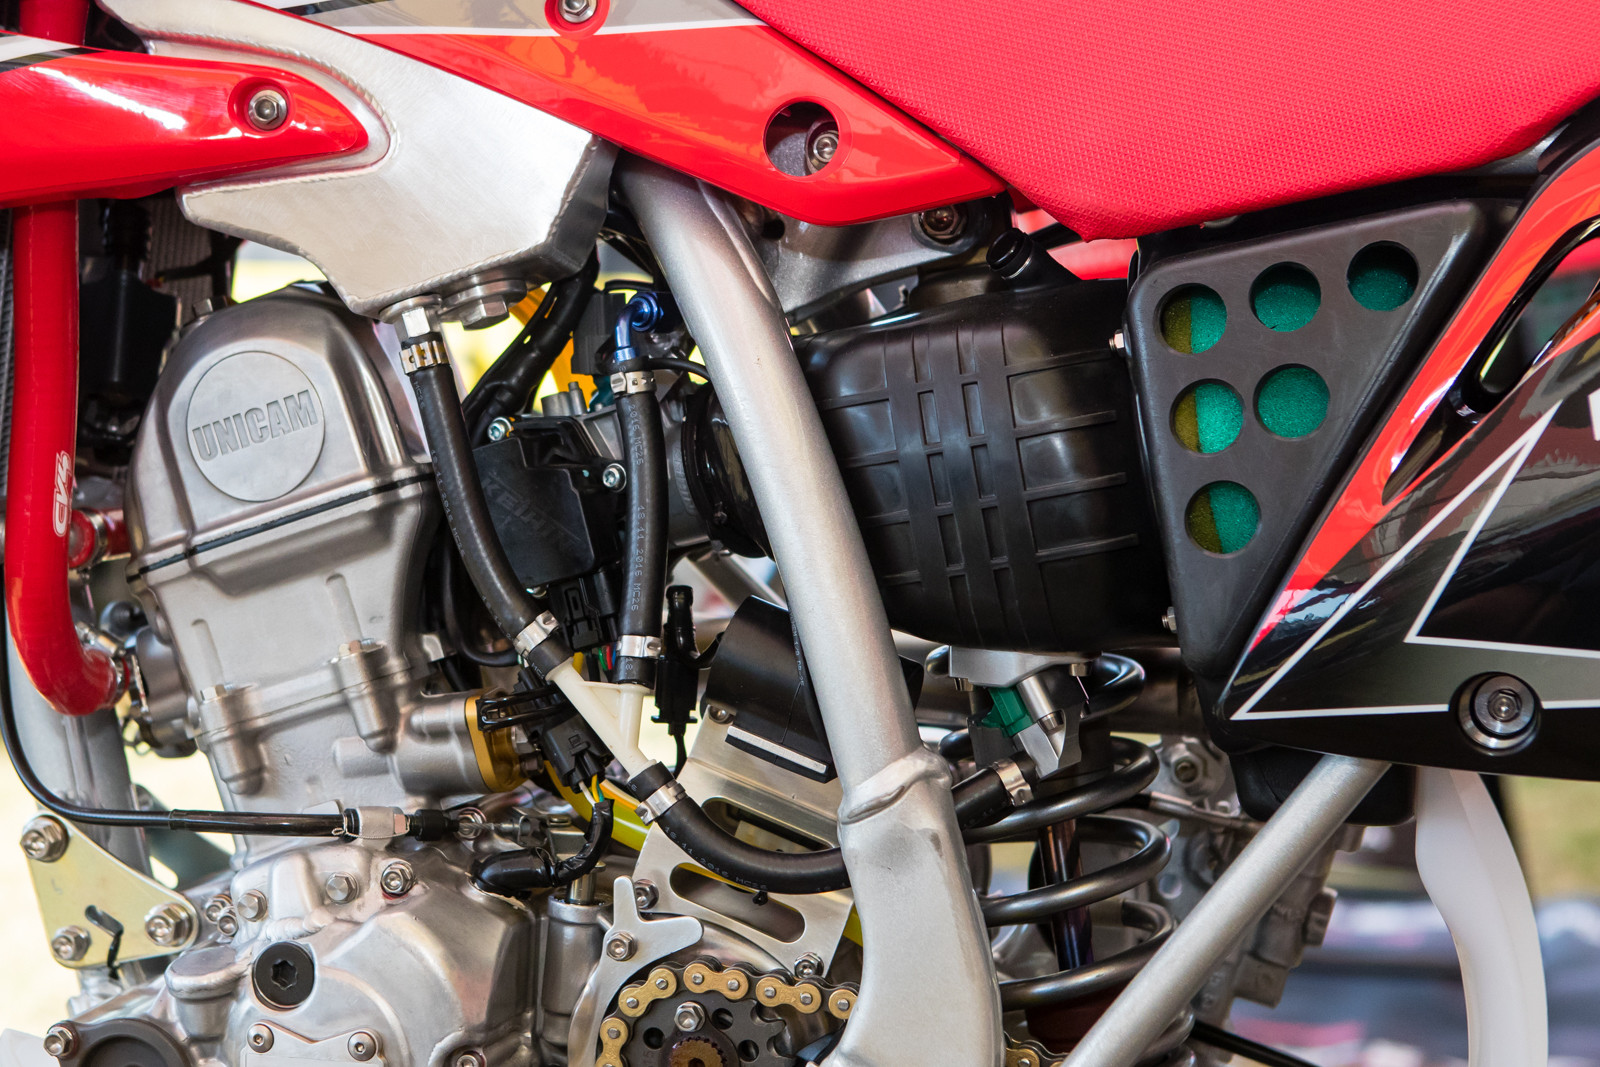 To of course work with the added fuel injection systems...which features duel fuel injectors and a throttle body from the CBR300 street bike.